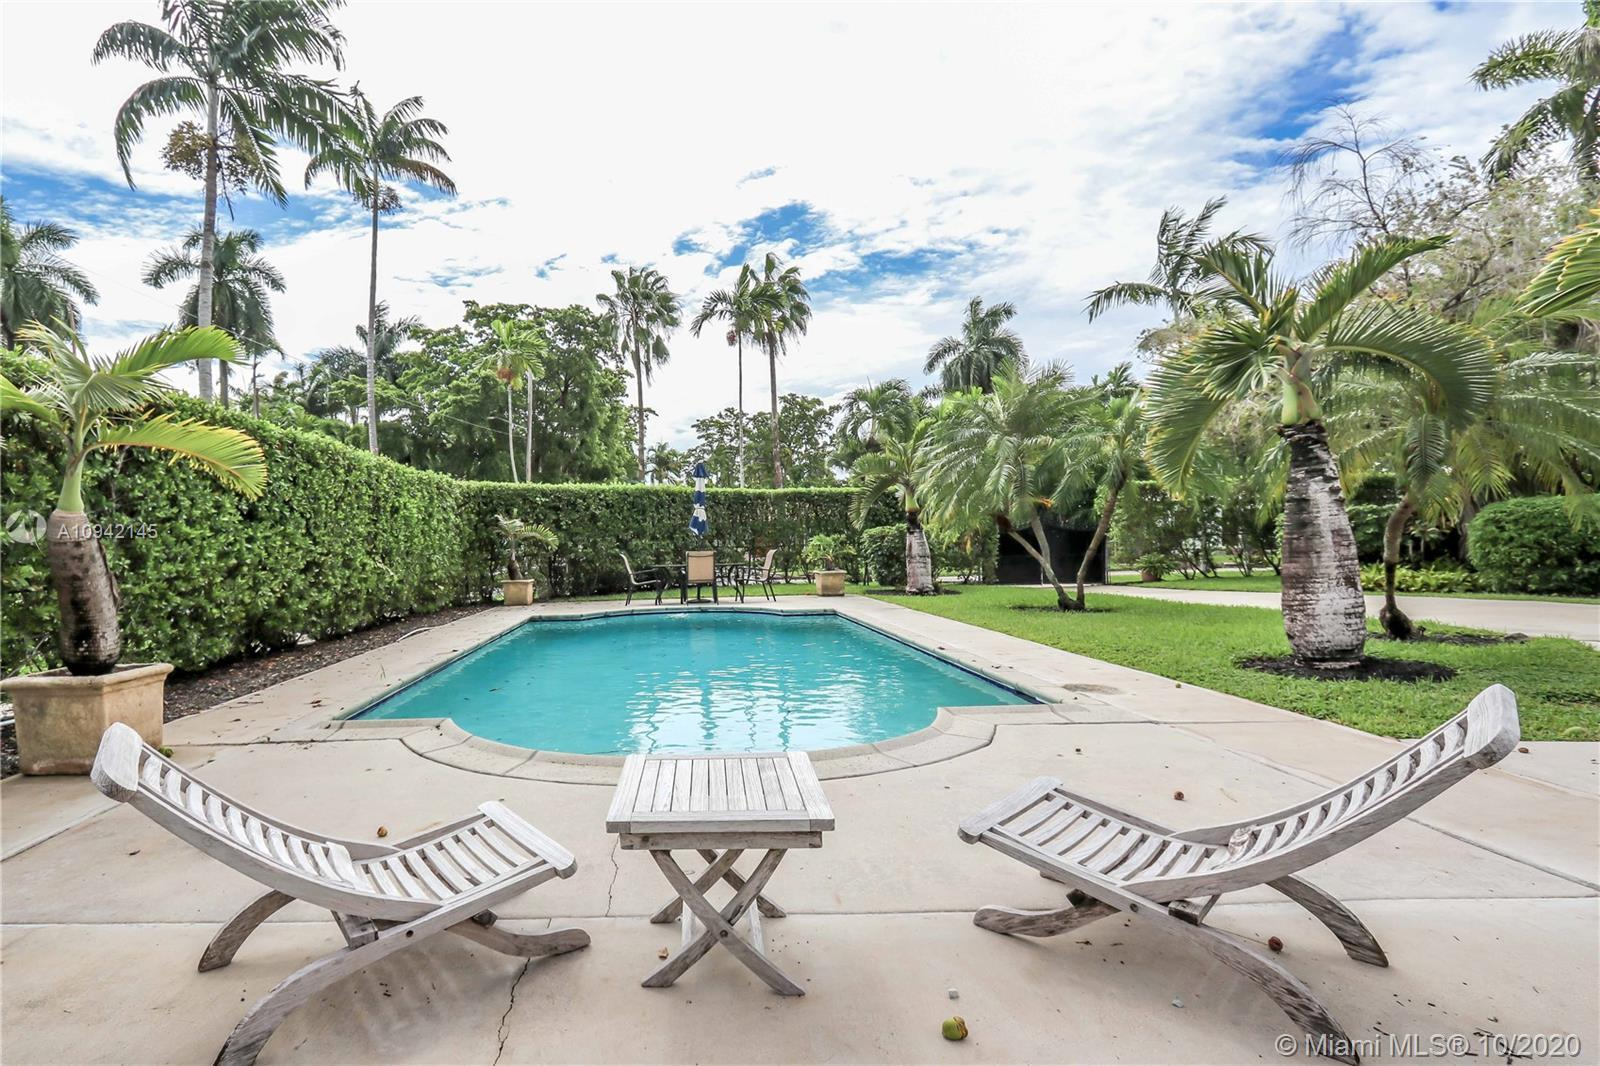 Stunning Art Deco 3 bedroom /2 bath home in Hollywood Lakes area. This double corner lot features a